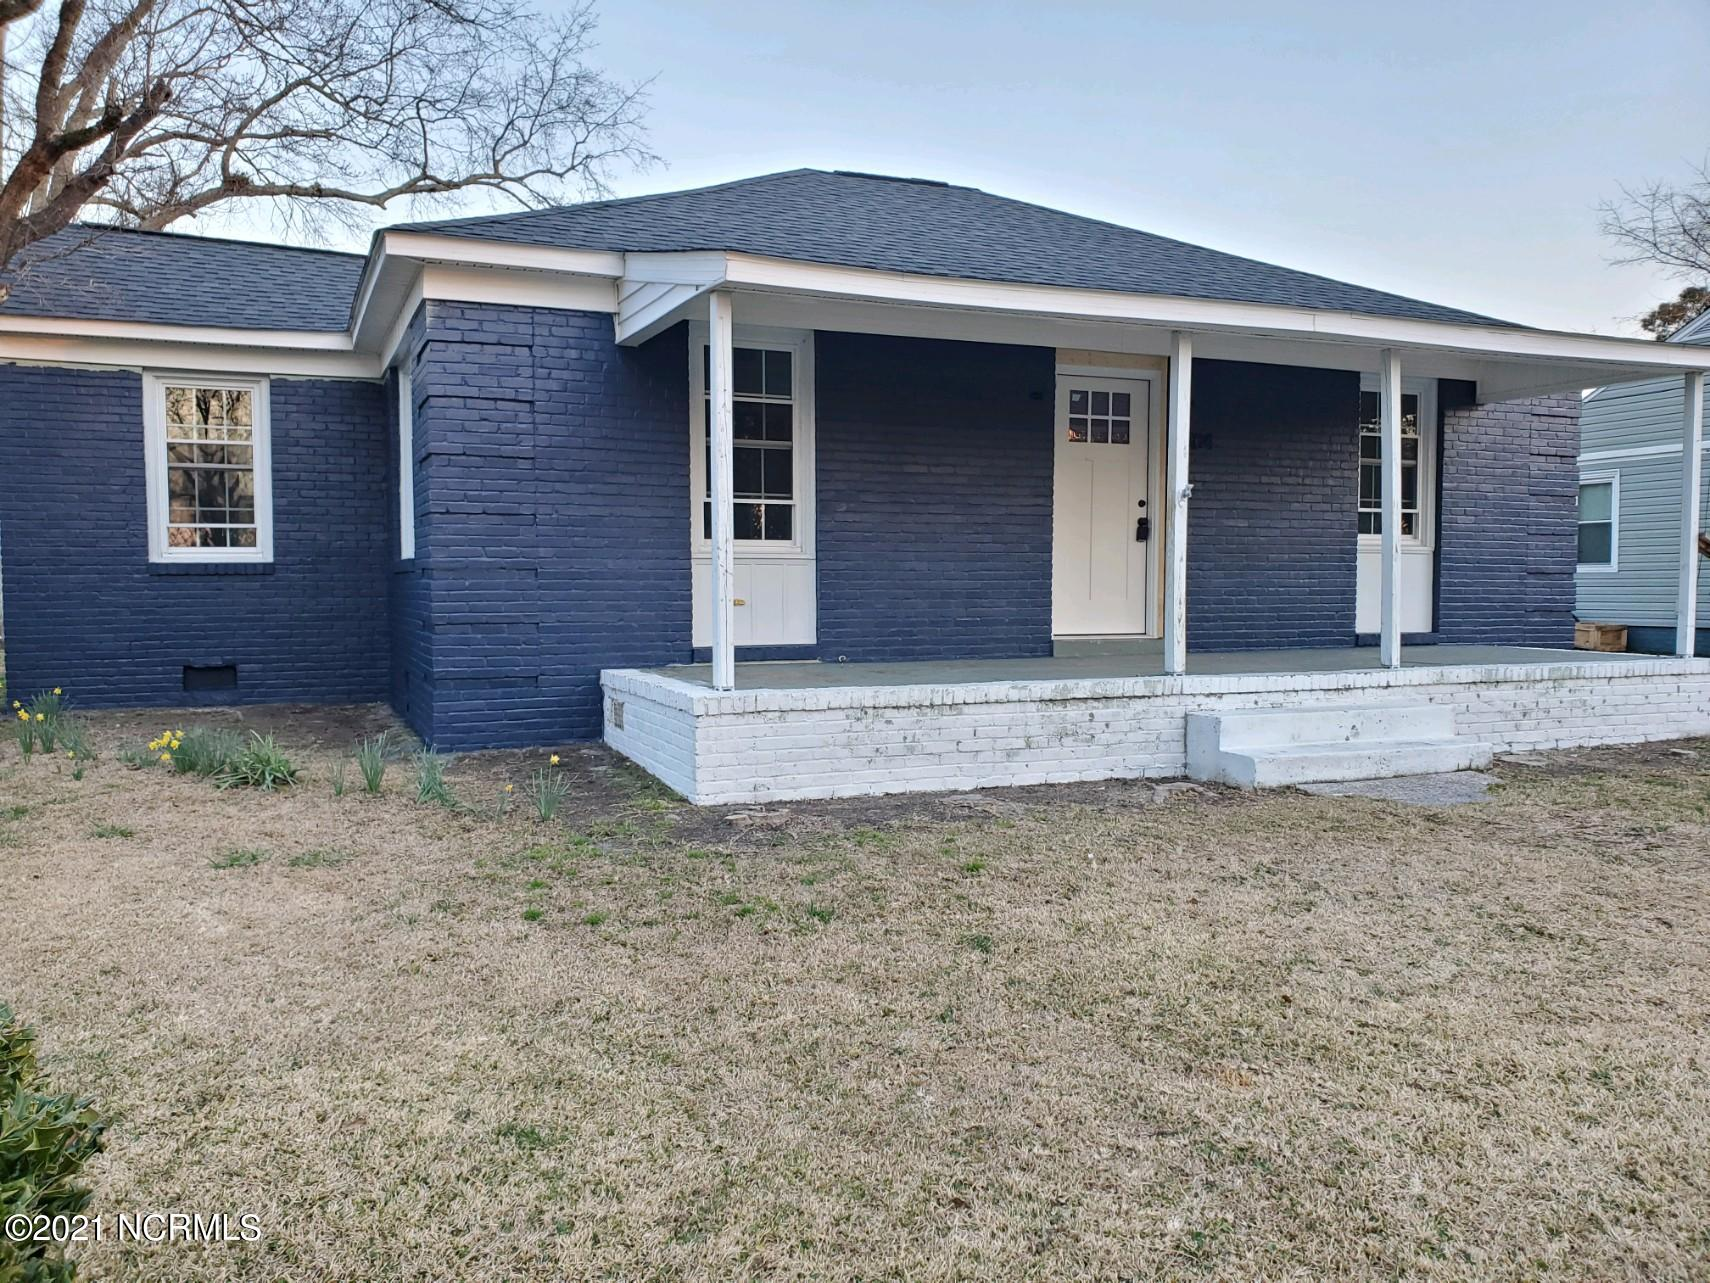 This 2 Bedroom 2 Bath Home is being completely Remodeled.